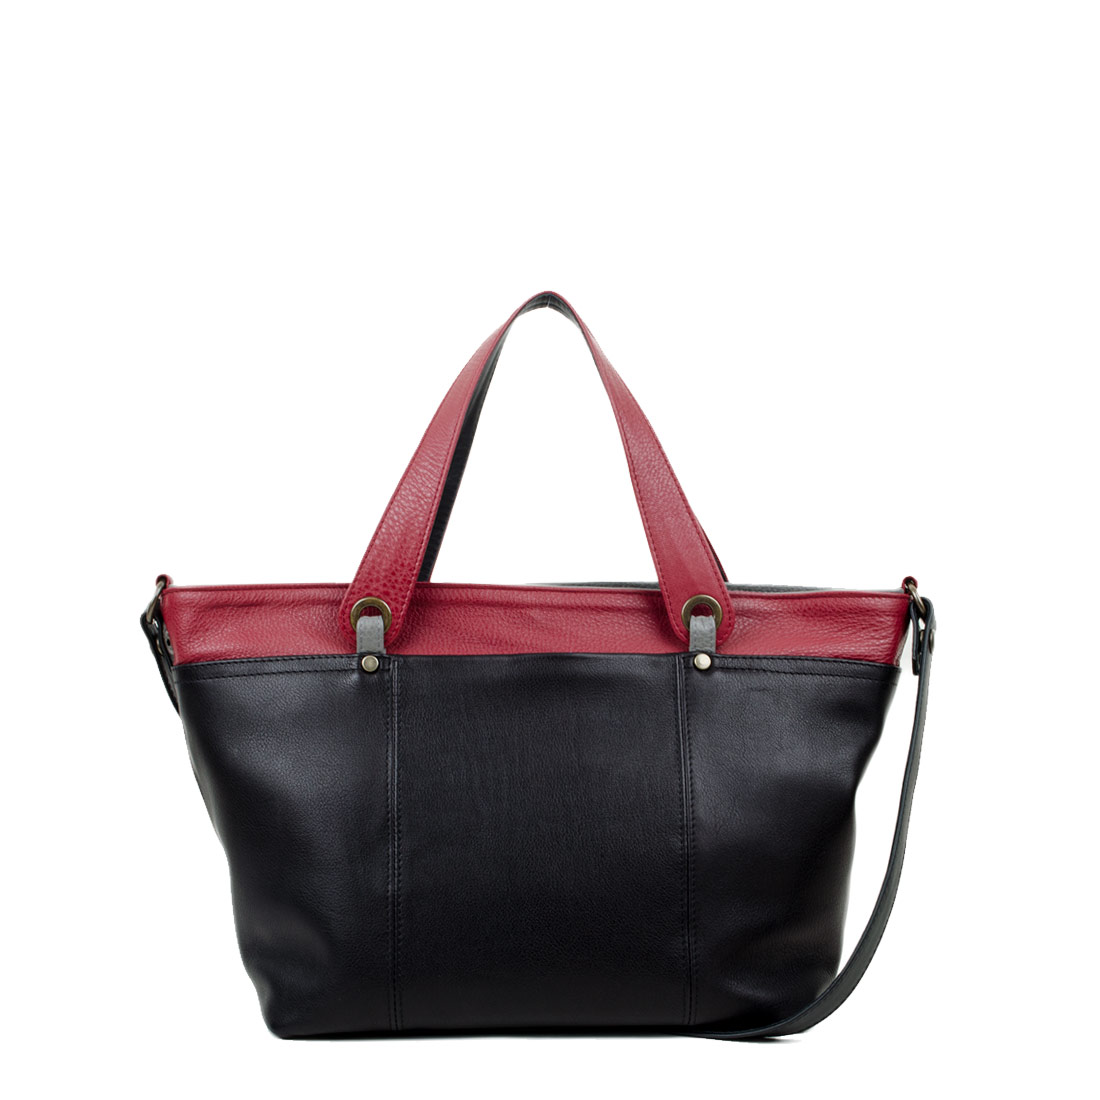 Lucy Black with Red Leather Tote Bag